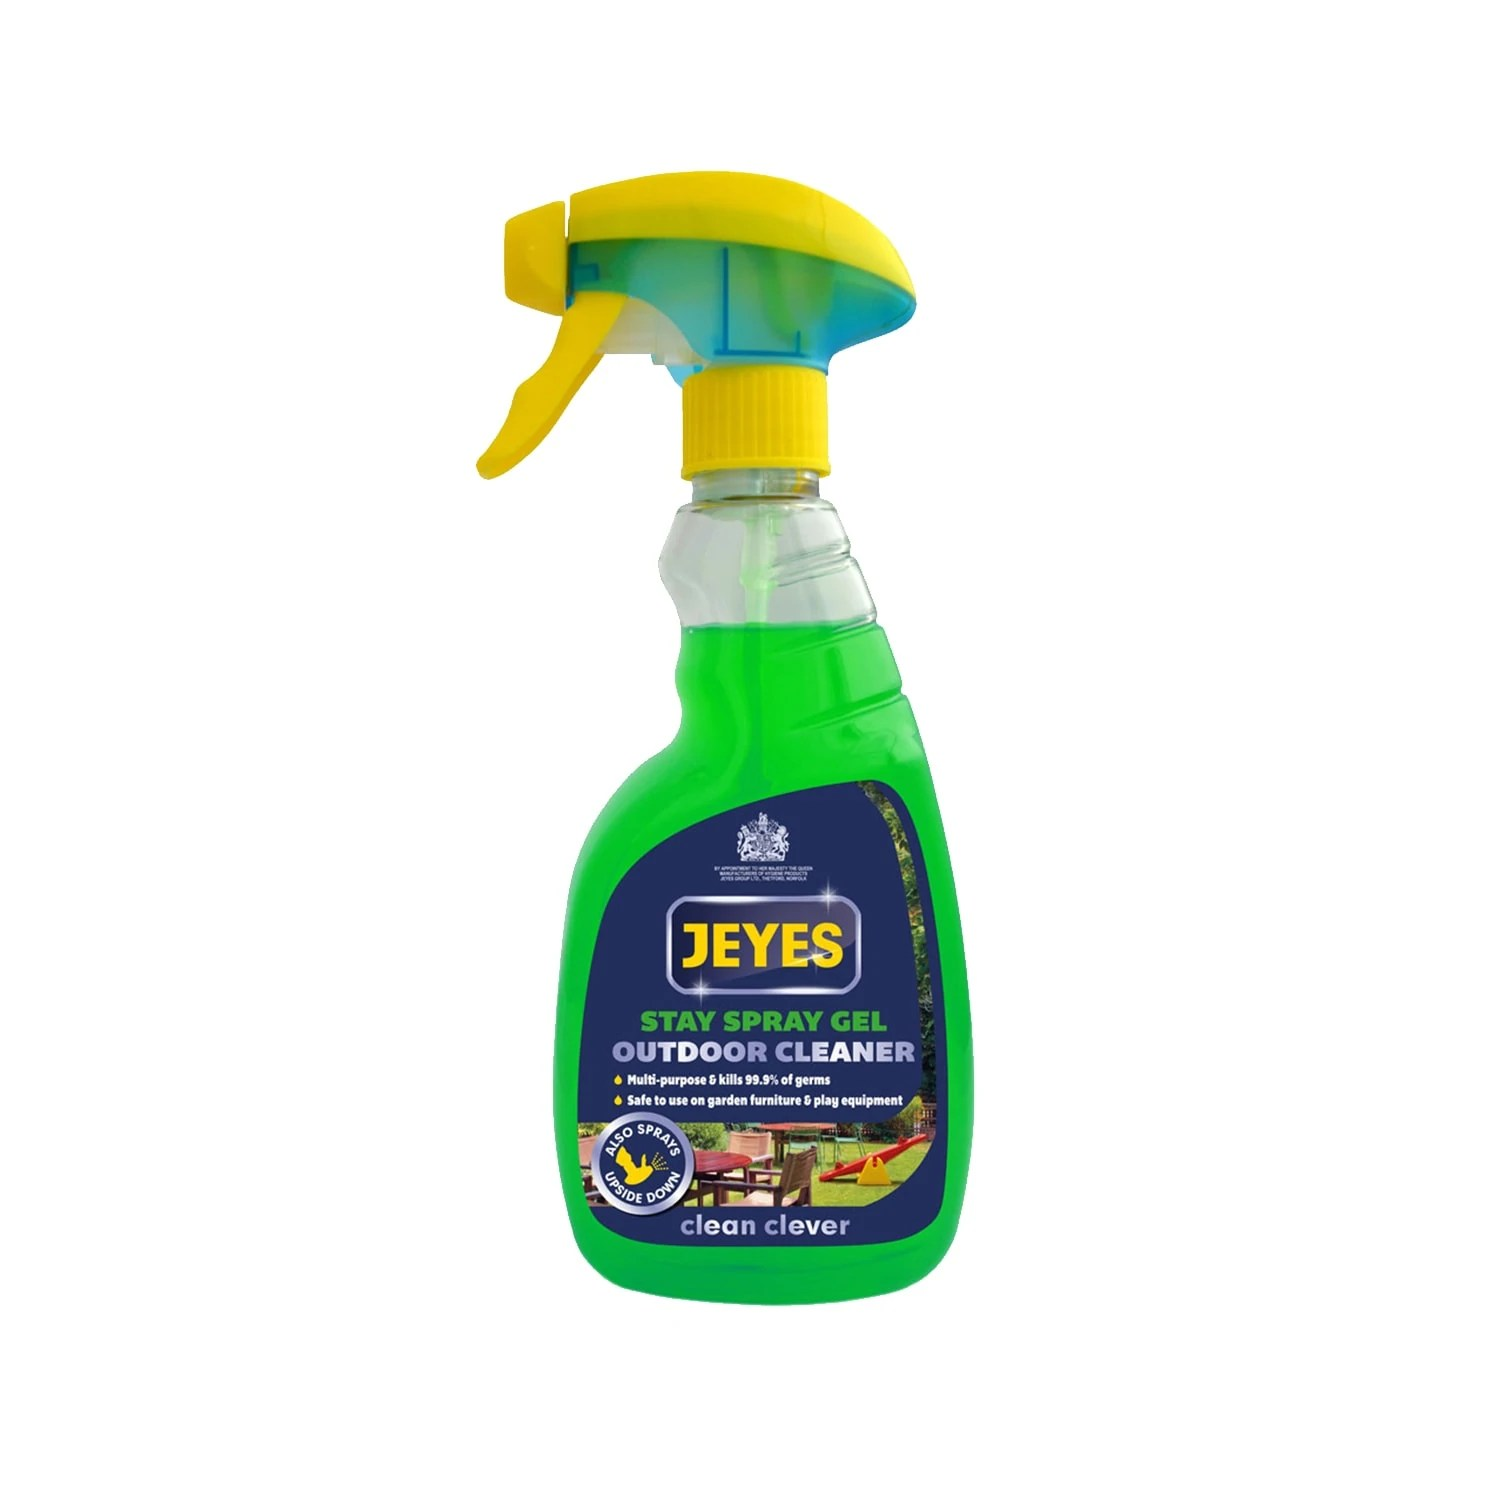 Jeyes-Stay-Spray-Gel-Outdoor-Cleaner-500ml